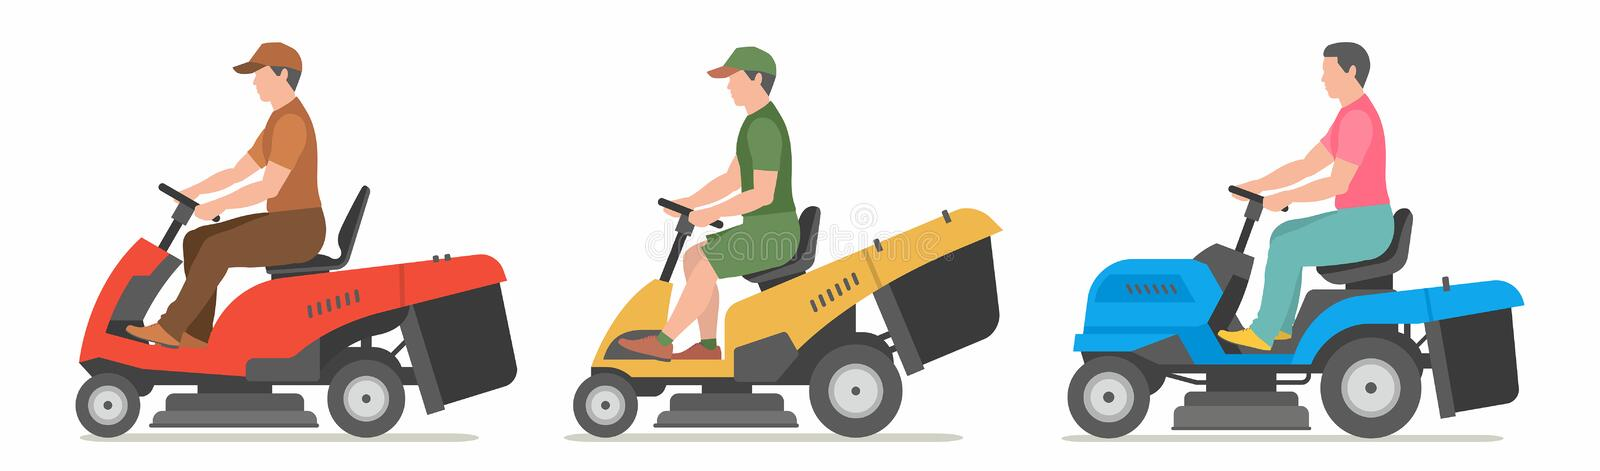 Man on tractor lawnmower royalty free illustration